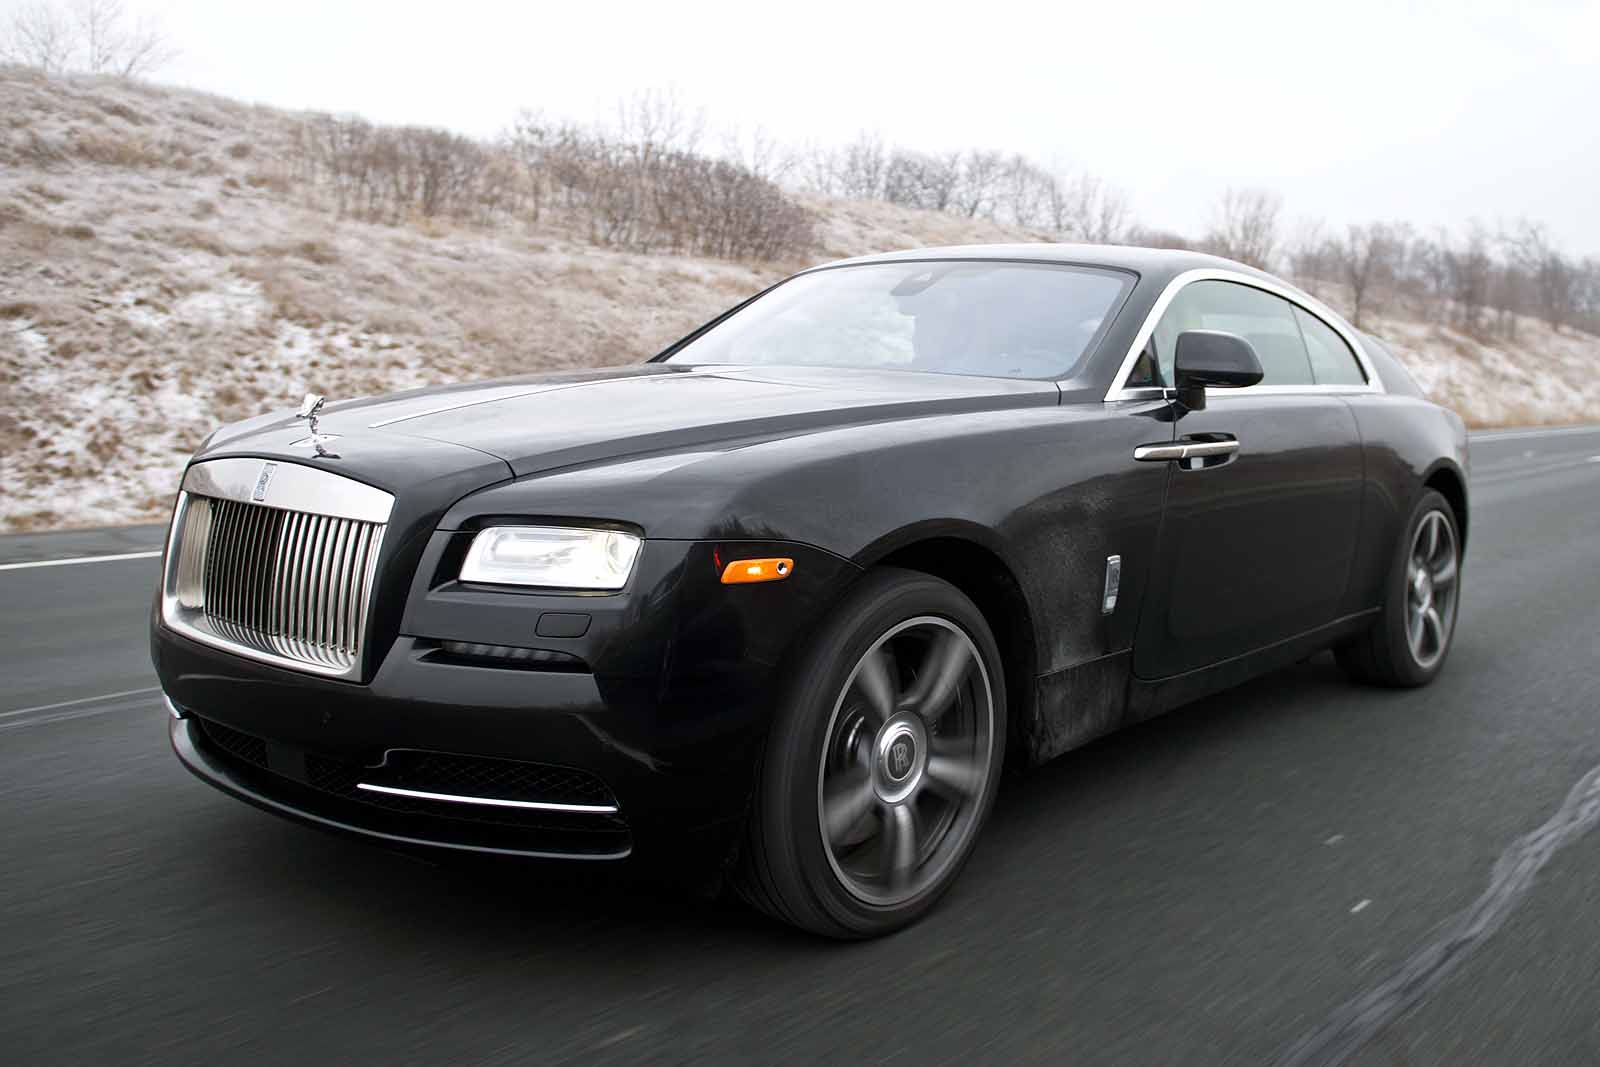 9 Things I Learned Driving the Most Powerful Rolls-Royce Ever Created